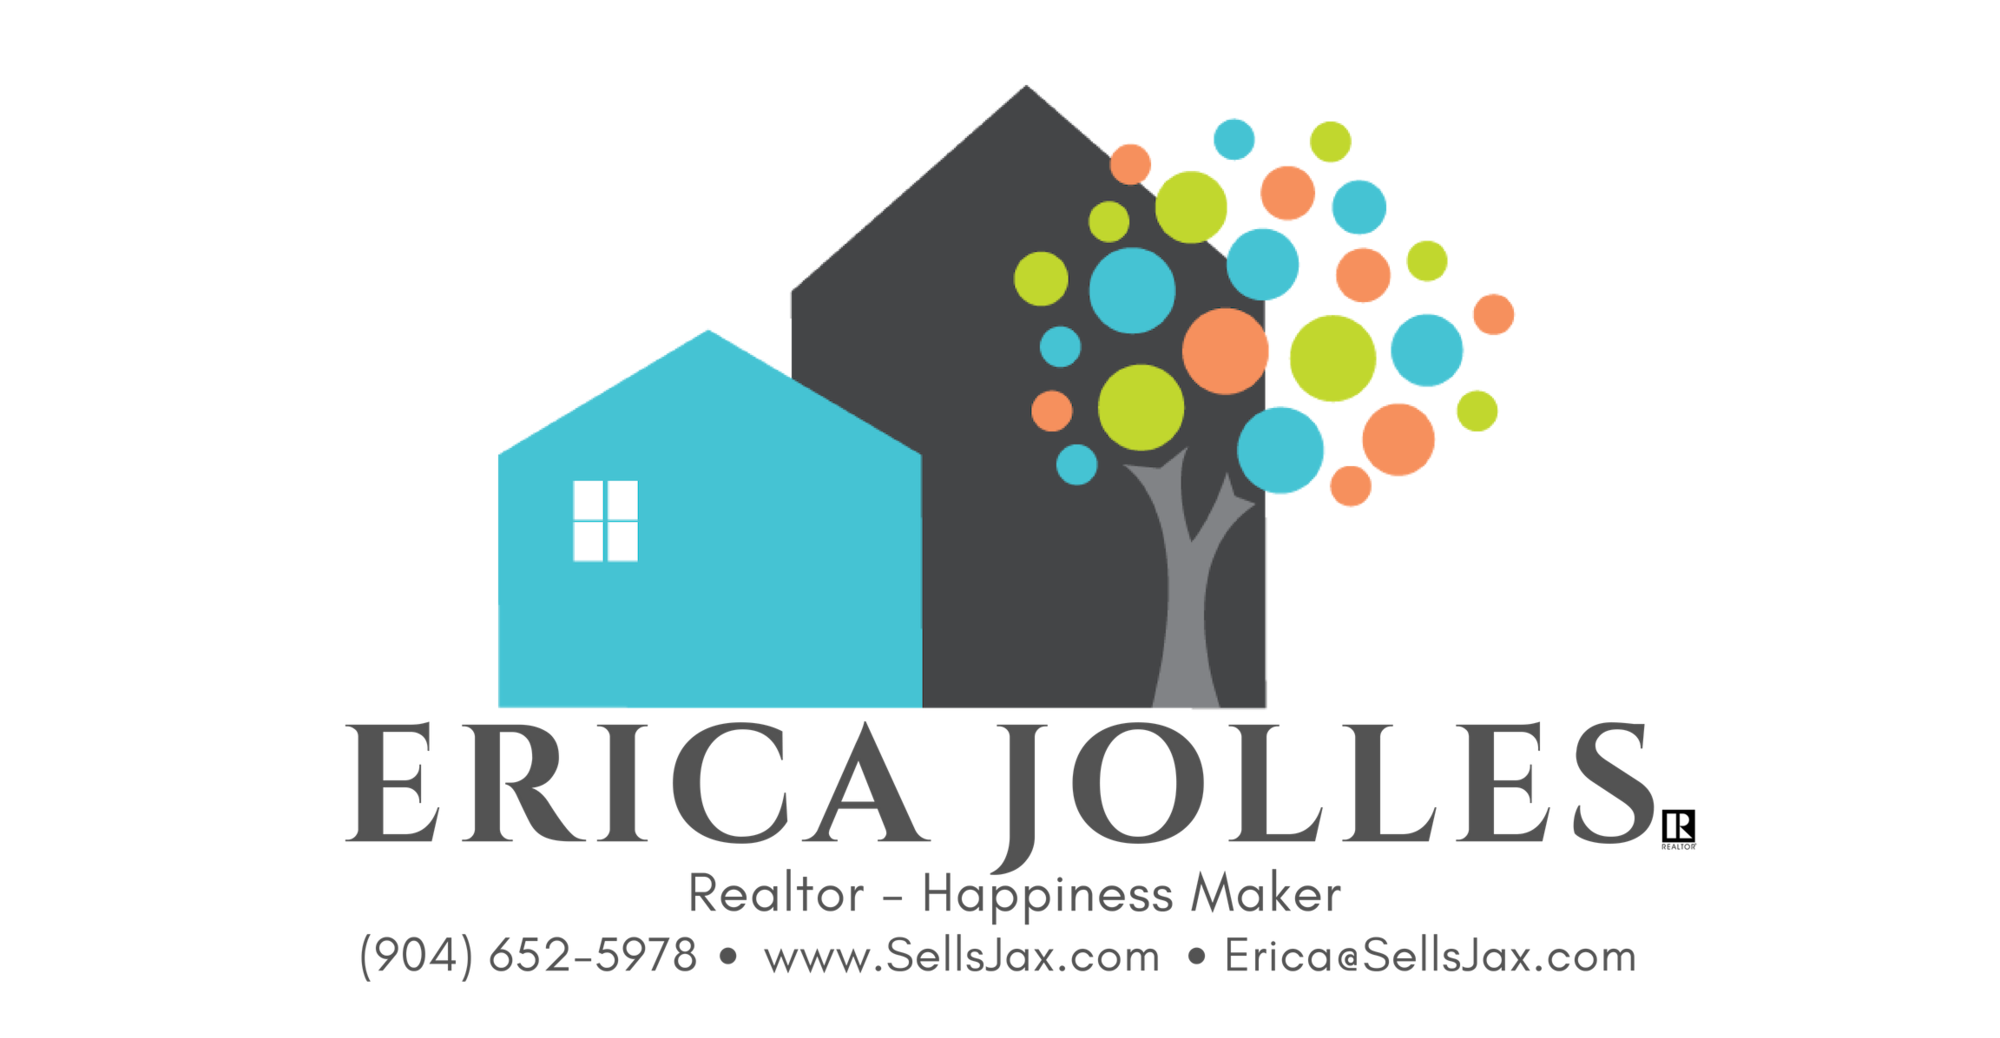 Erica Jolles Realtor Happiness Maker